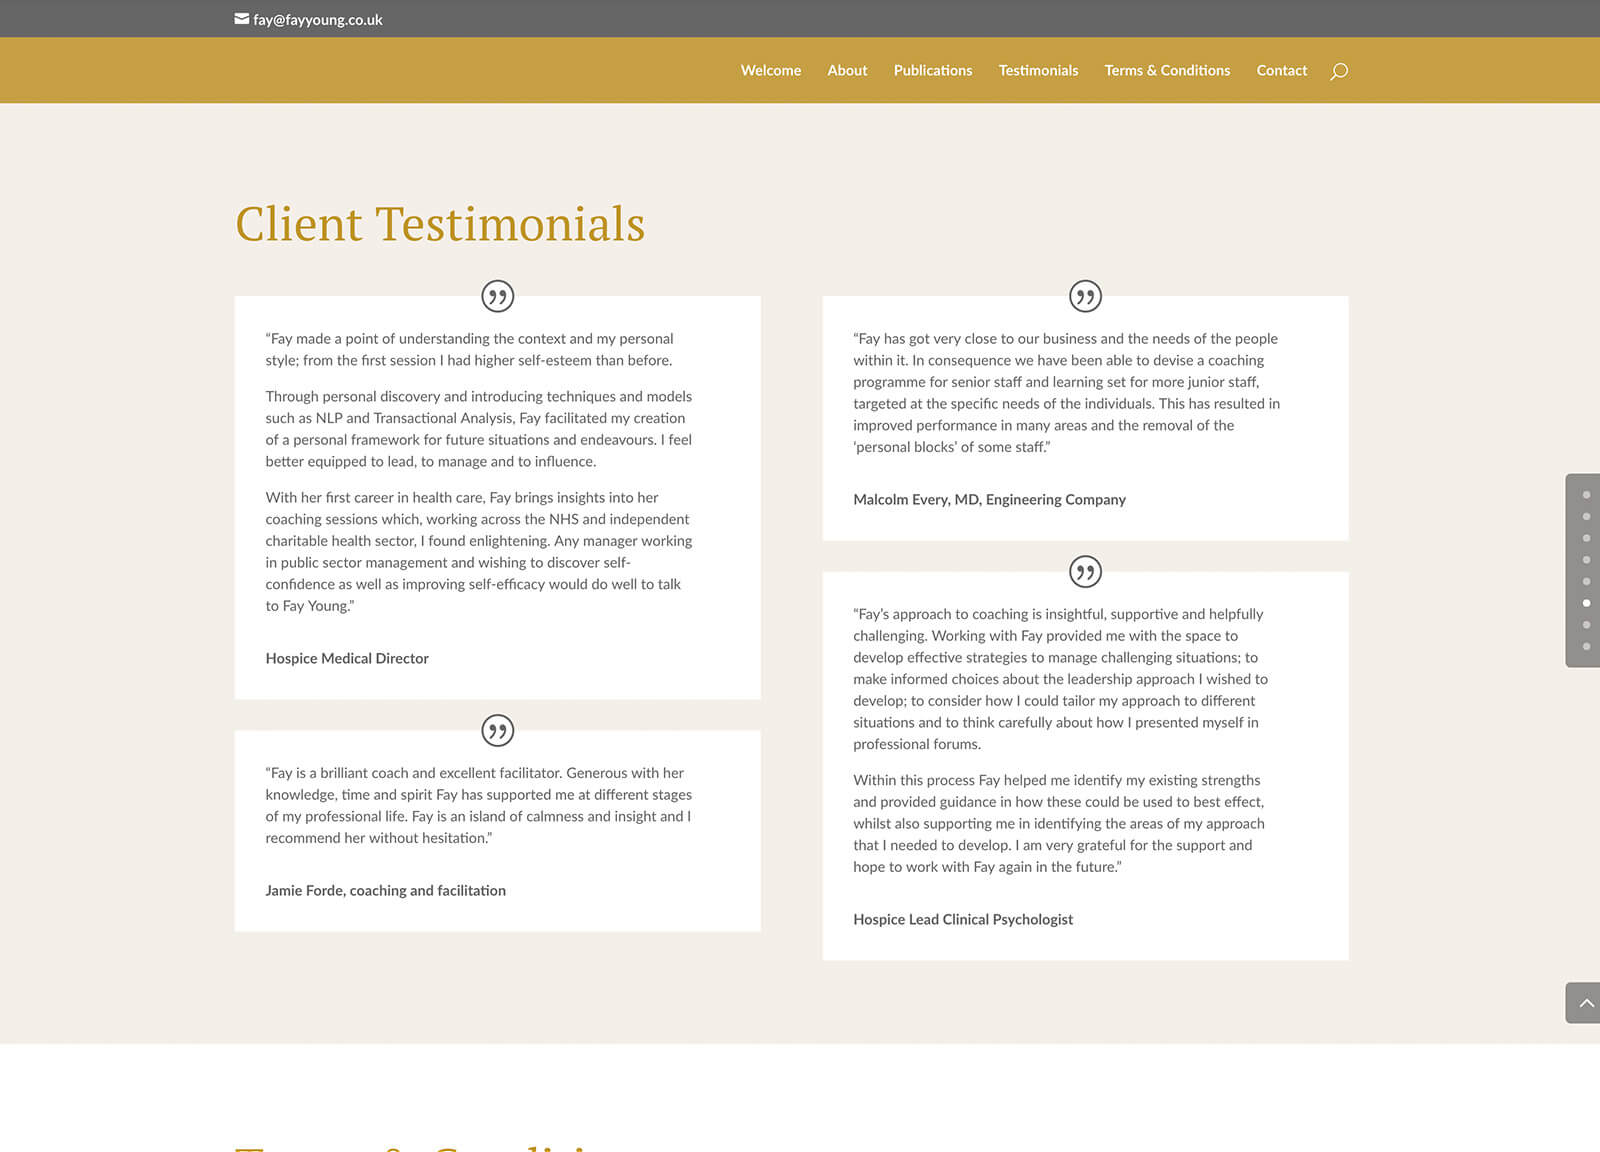 Quick website design for local self-employed consultant website: Testimonials